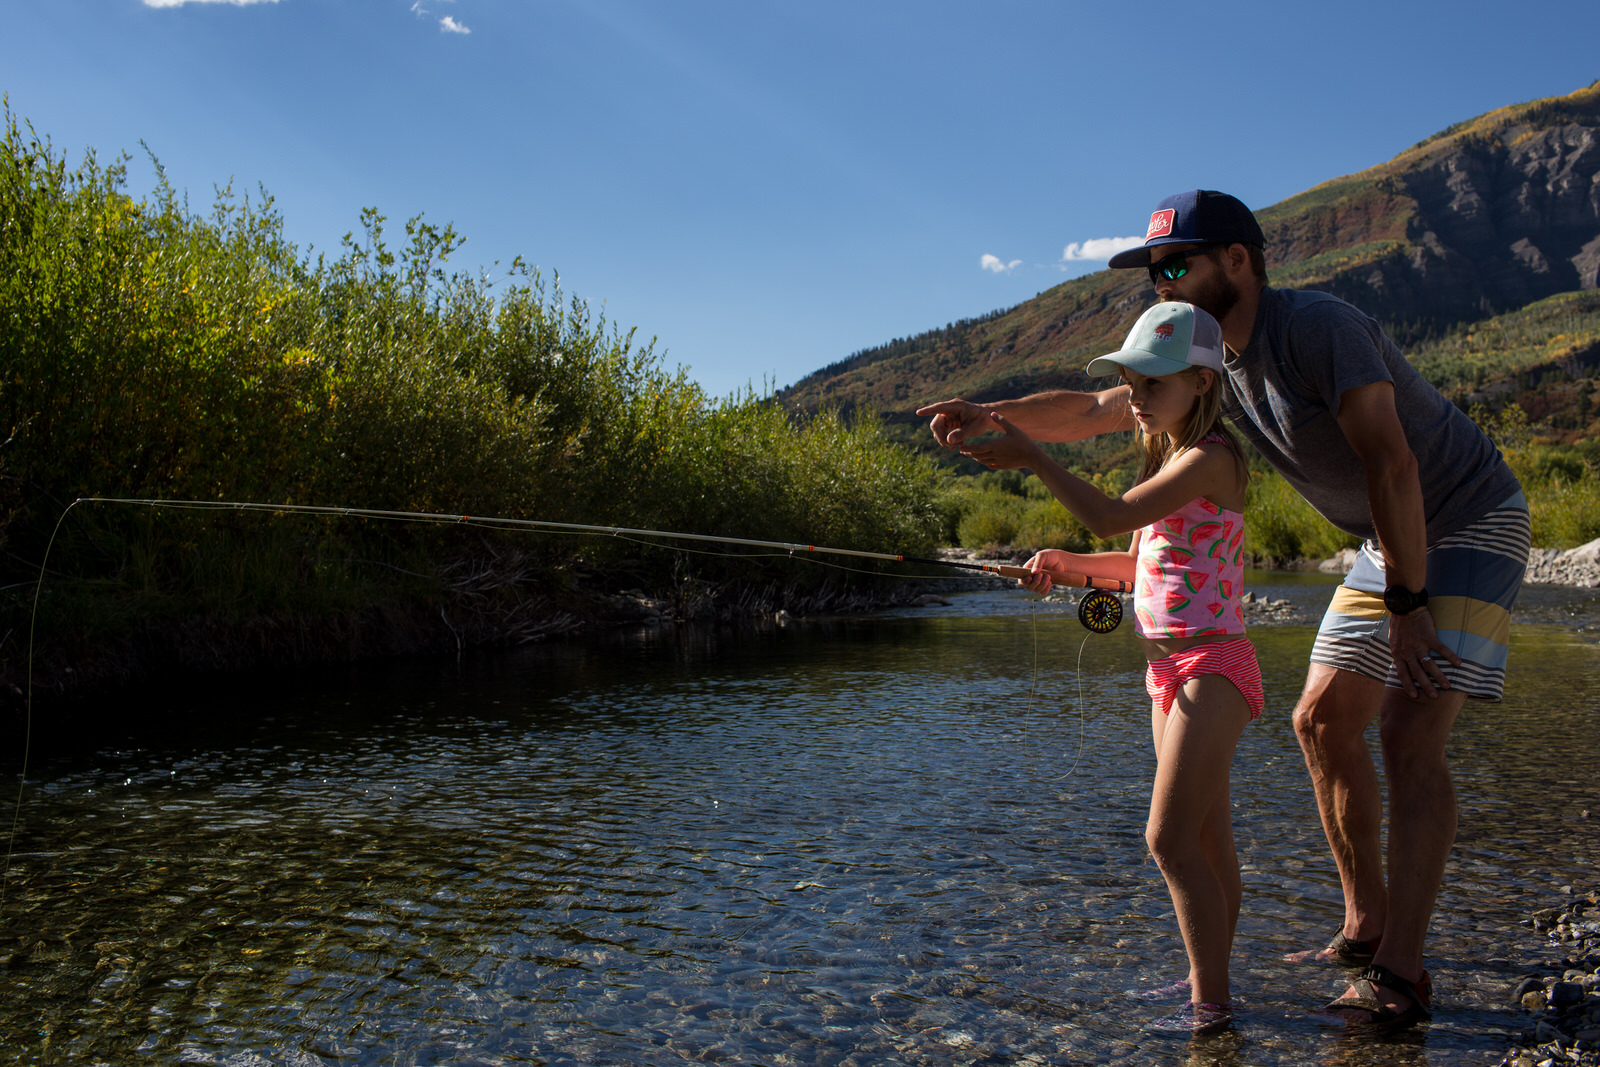 dad helping daughter fly fish in aspen on a river on a sunny day